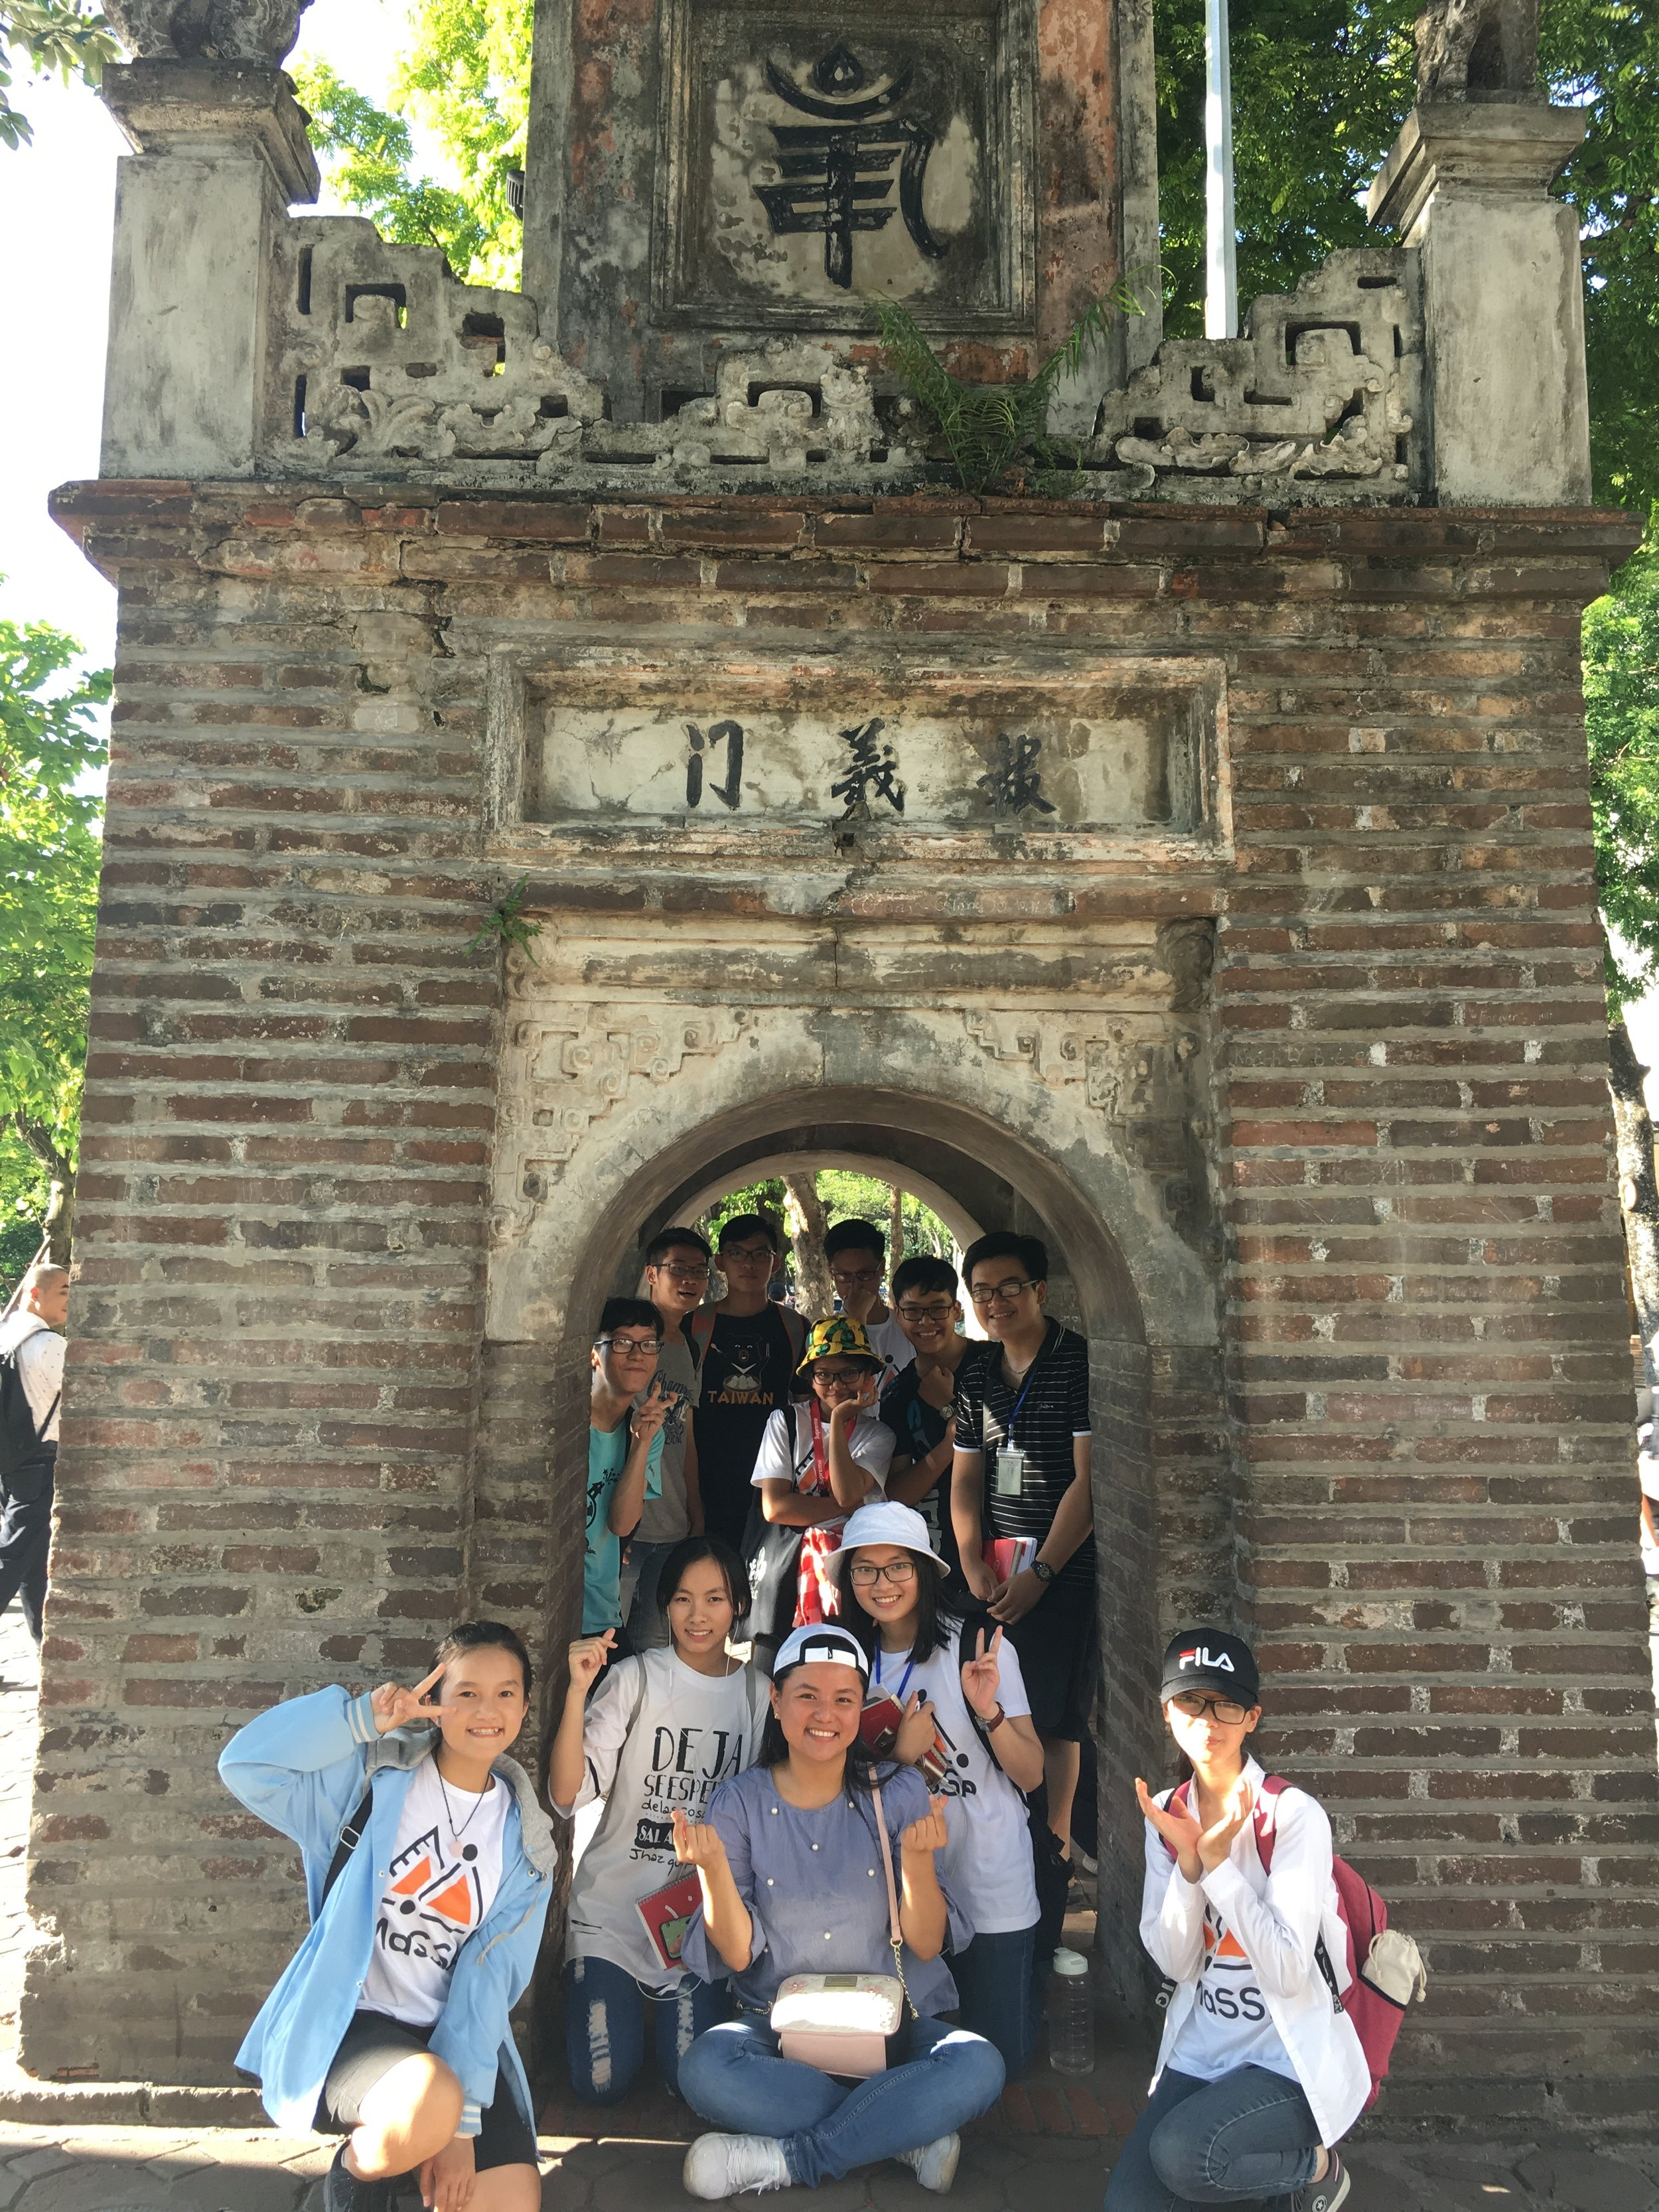 Our first urban observation field trip in Hanoi!